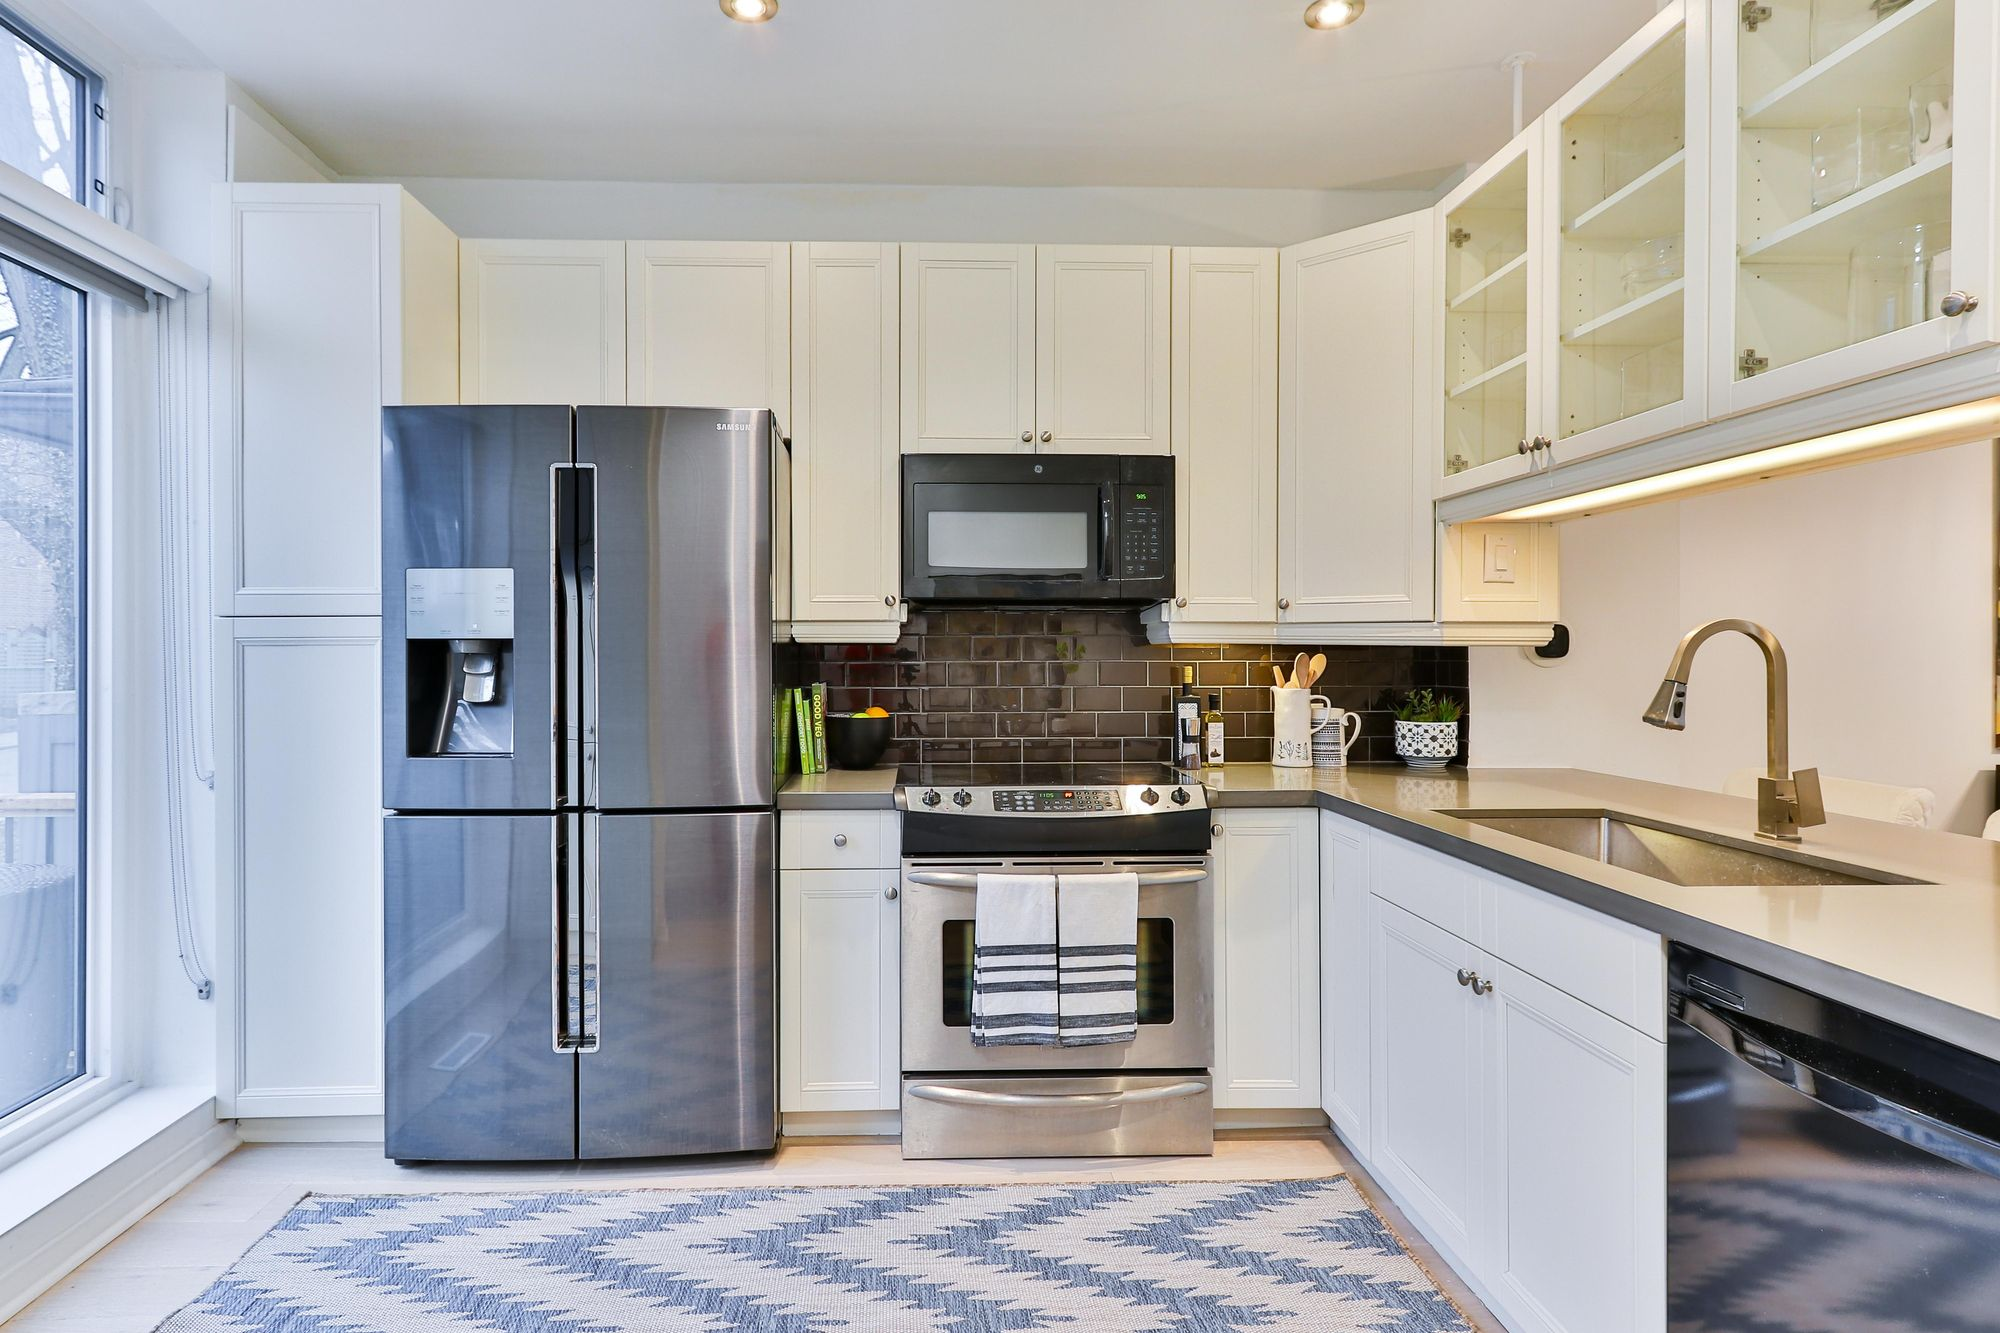 What Type of Refrigerator You Should Choose for Your Home?